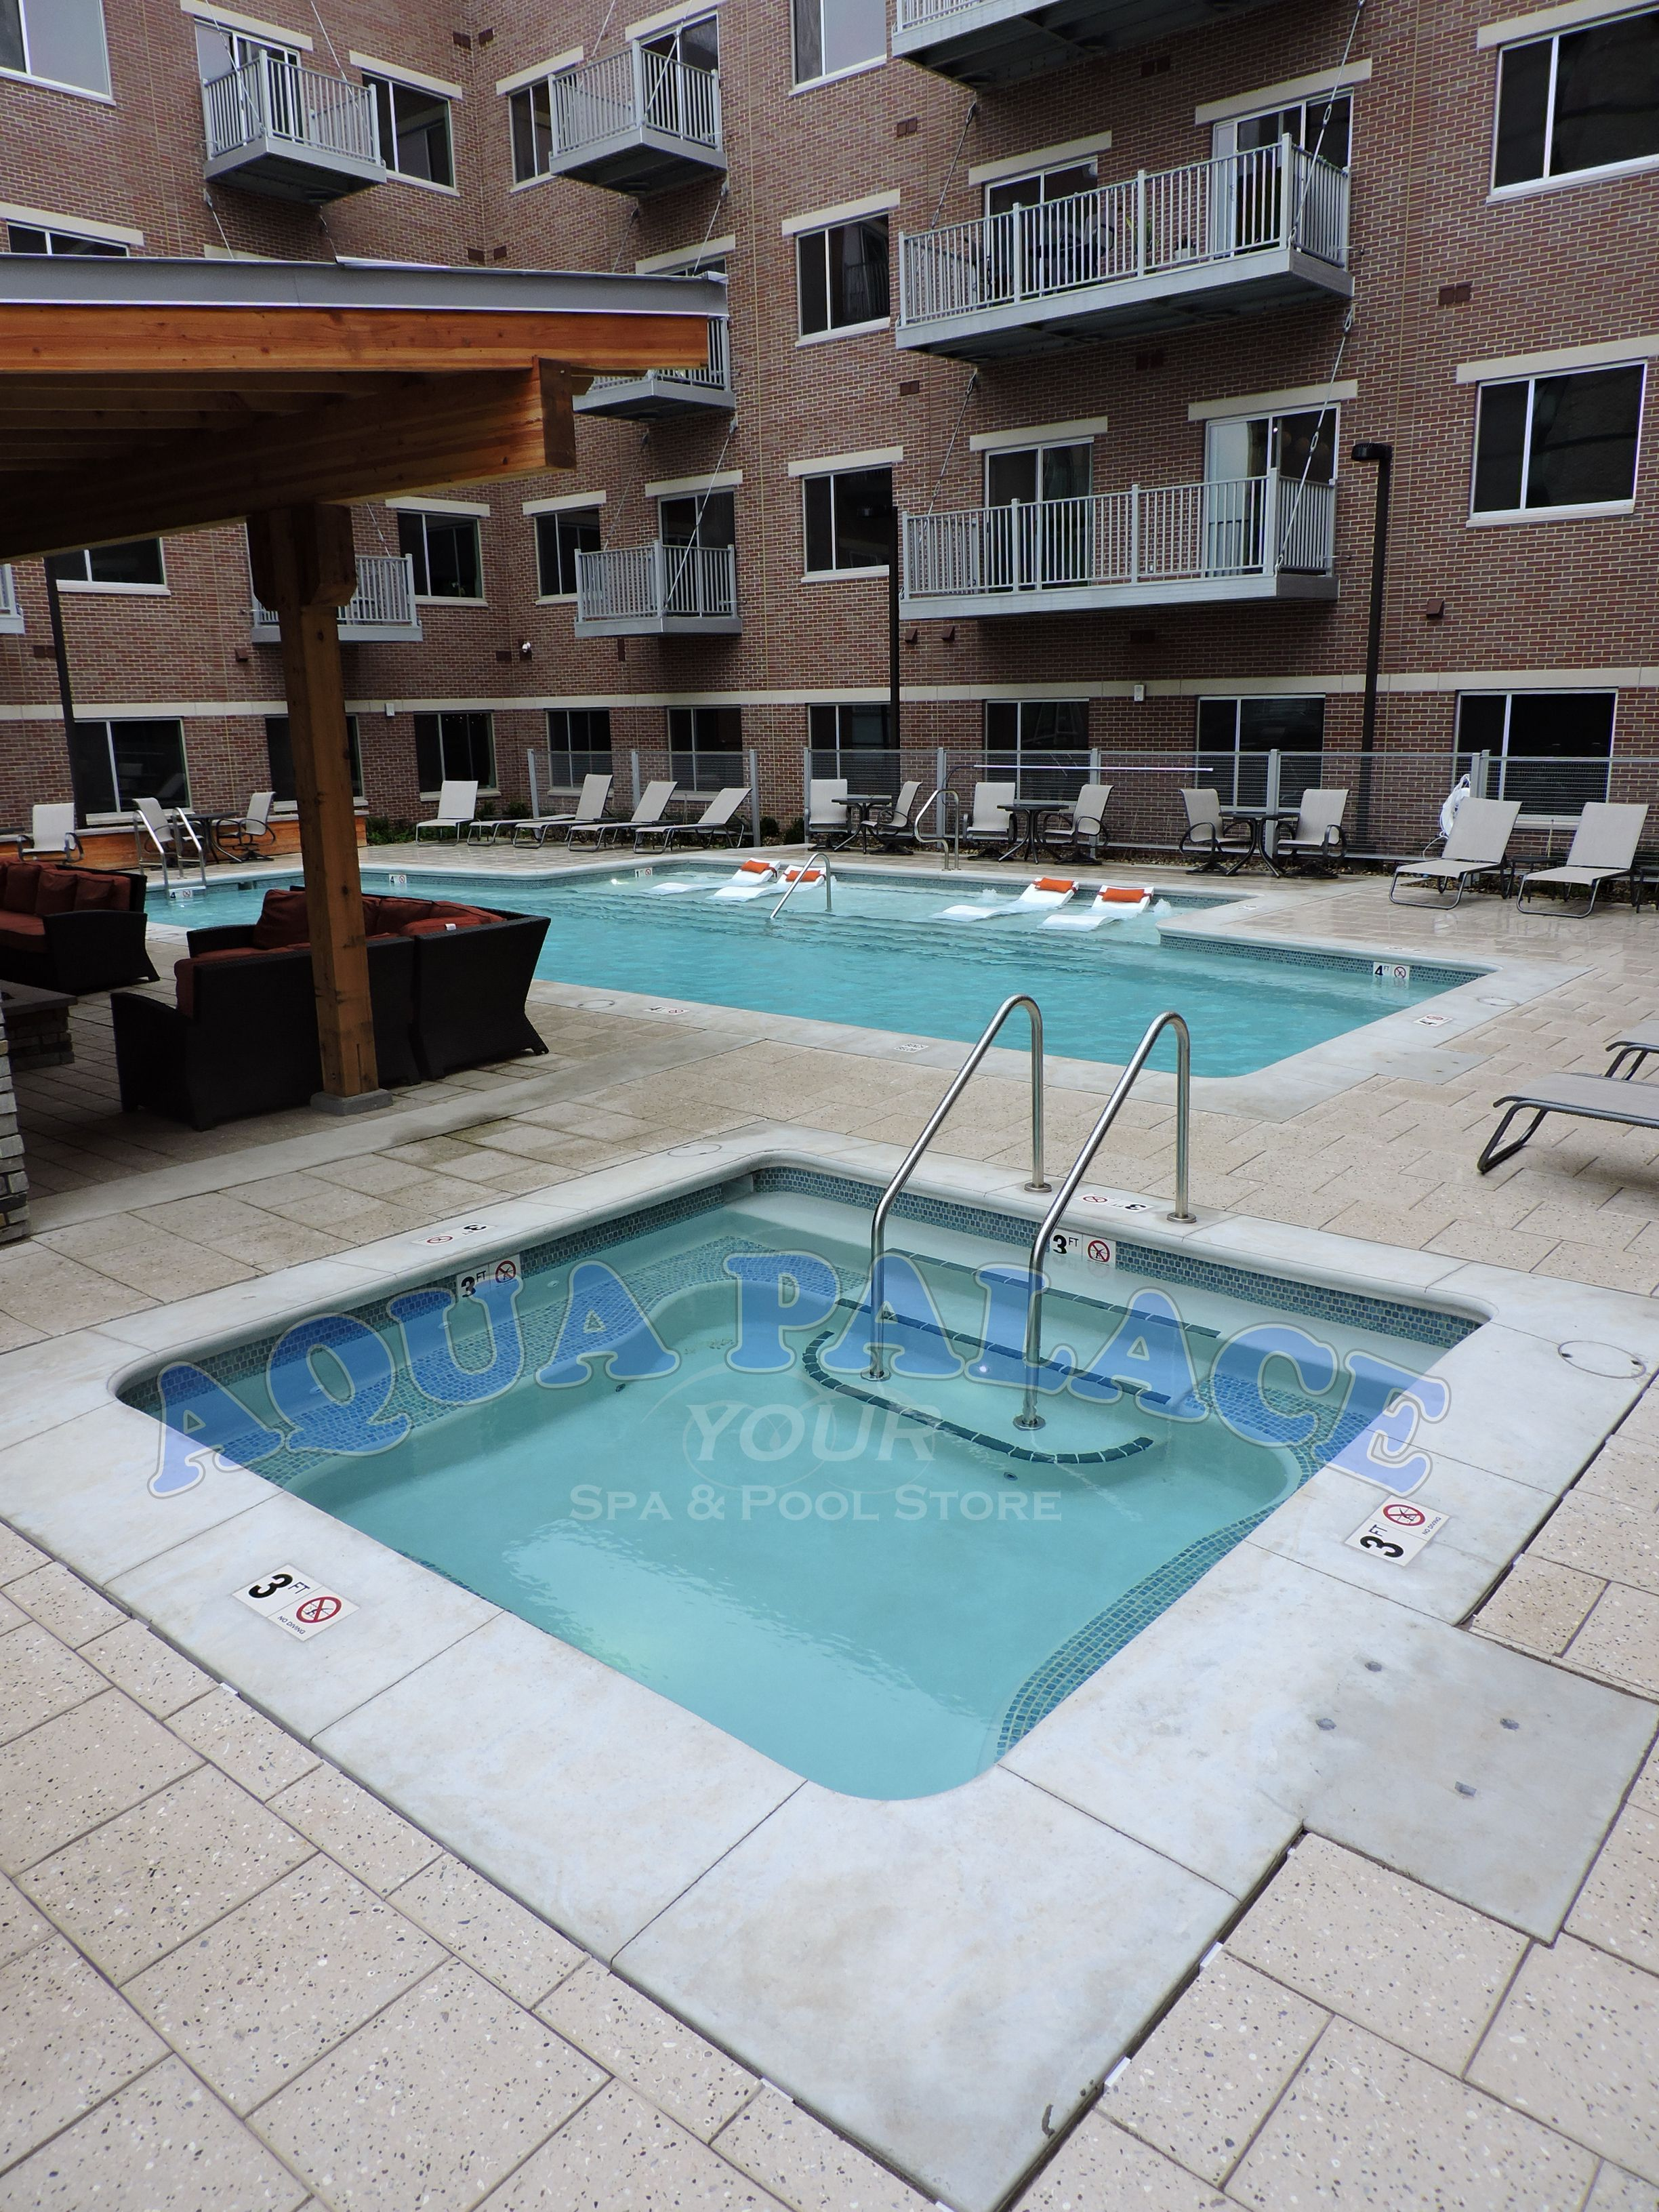 17 Totally Cool Apartment Complex Pool You Want To Copy Apartment Complex Pool Apartment Pool Cool Apartments